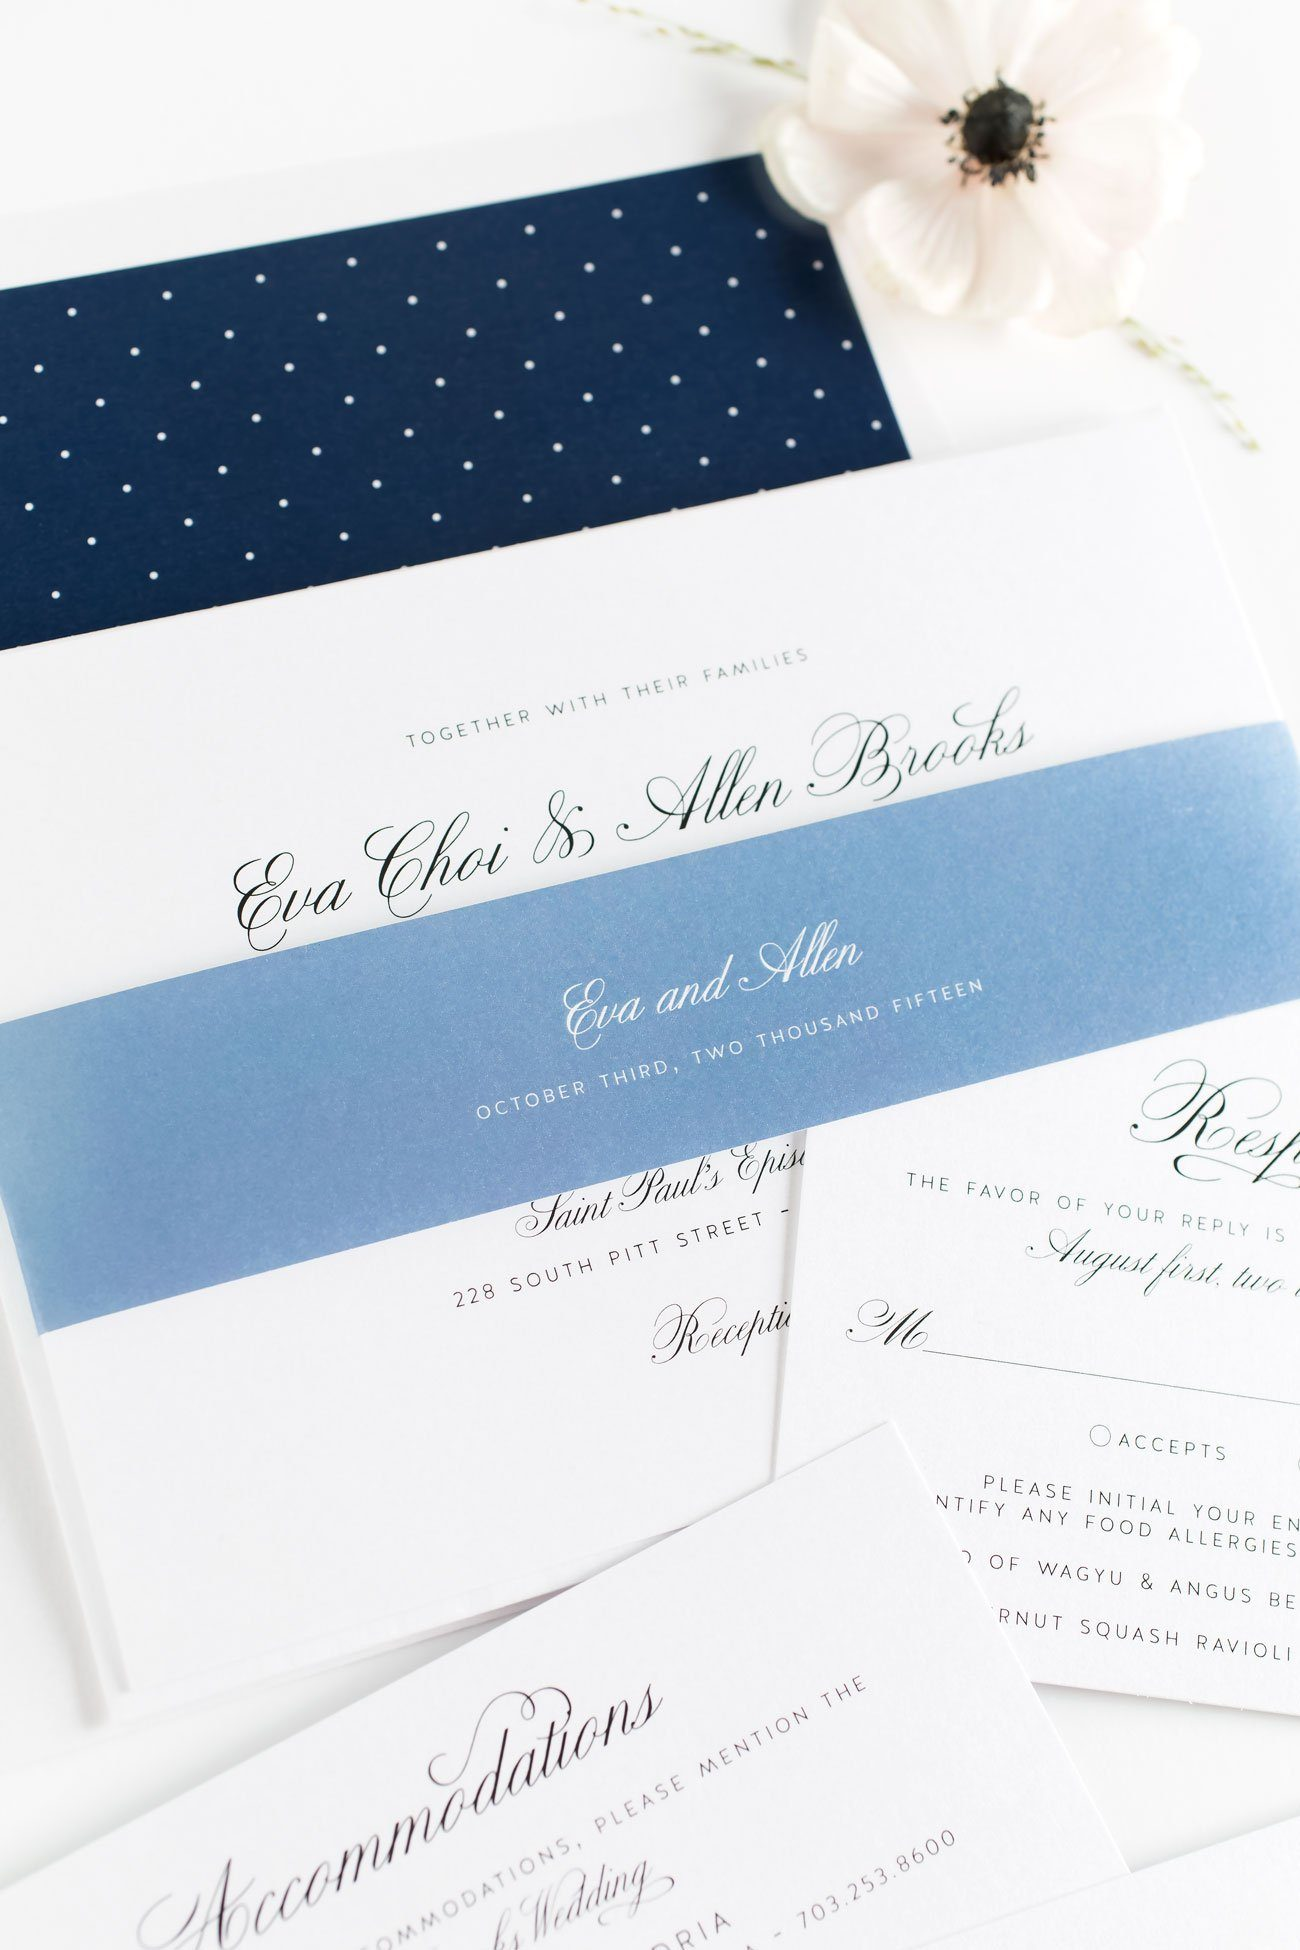 1940s Wedding Invitations in Navy and Dusty Blue